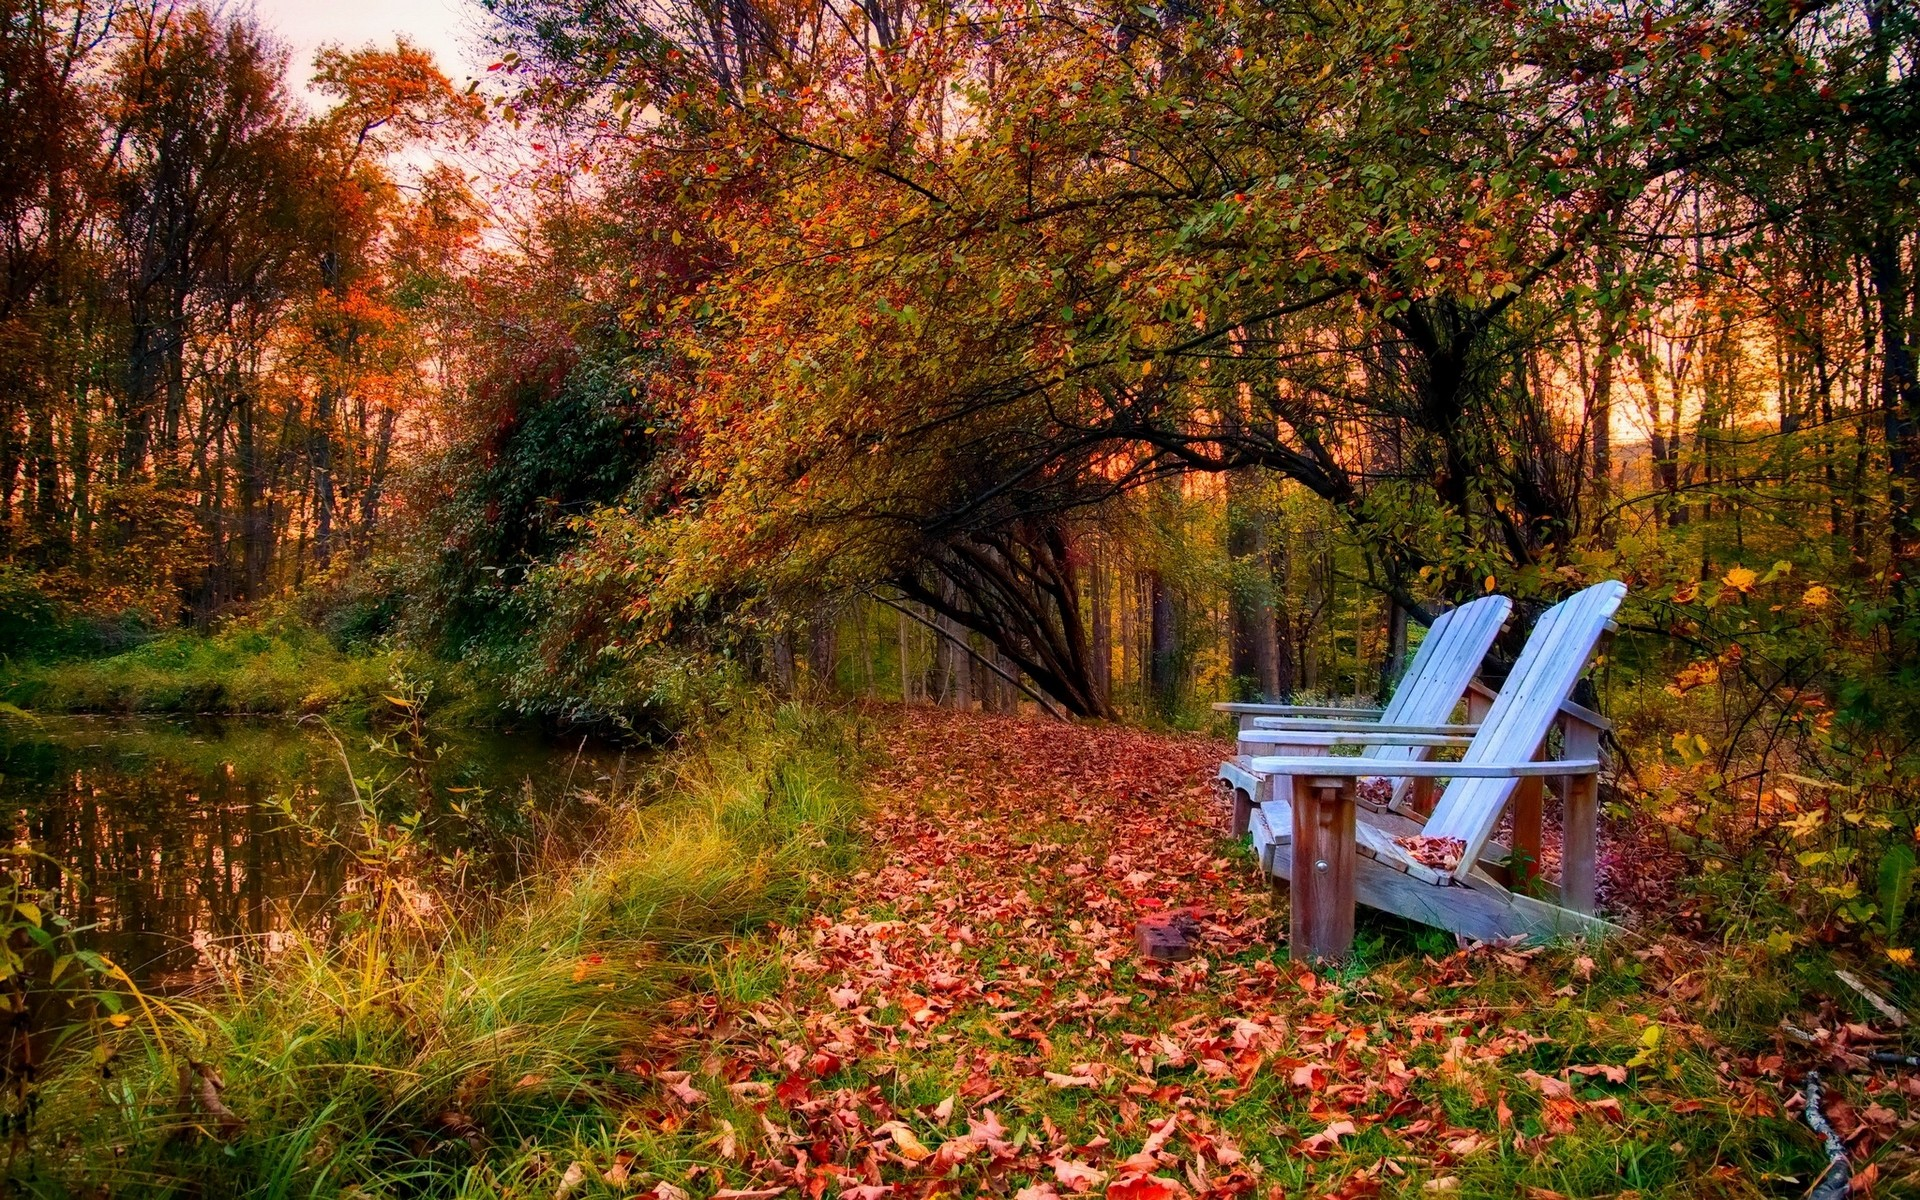 Fall Leaves Hd Mobile Wallpaper Photography Landscape Nature Park Fall Trees Bench